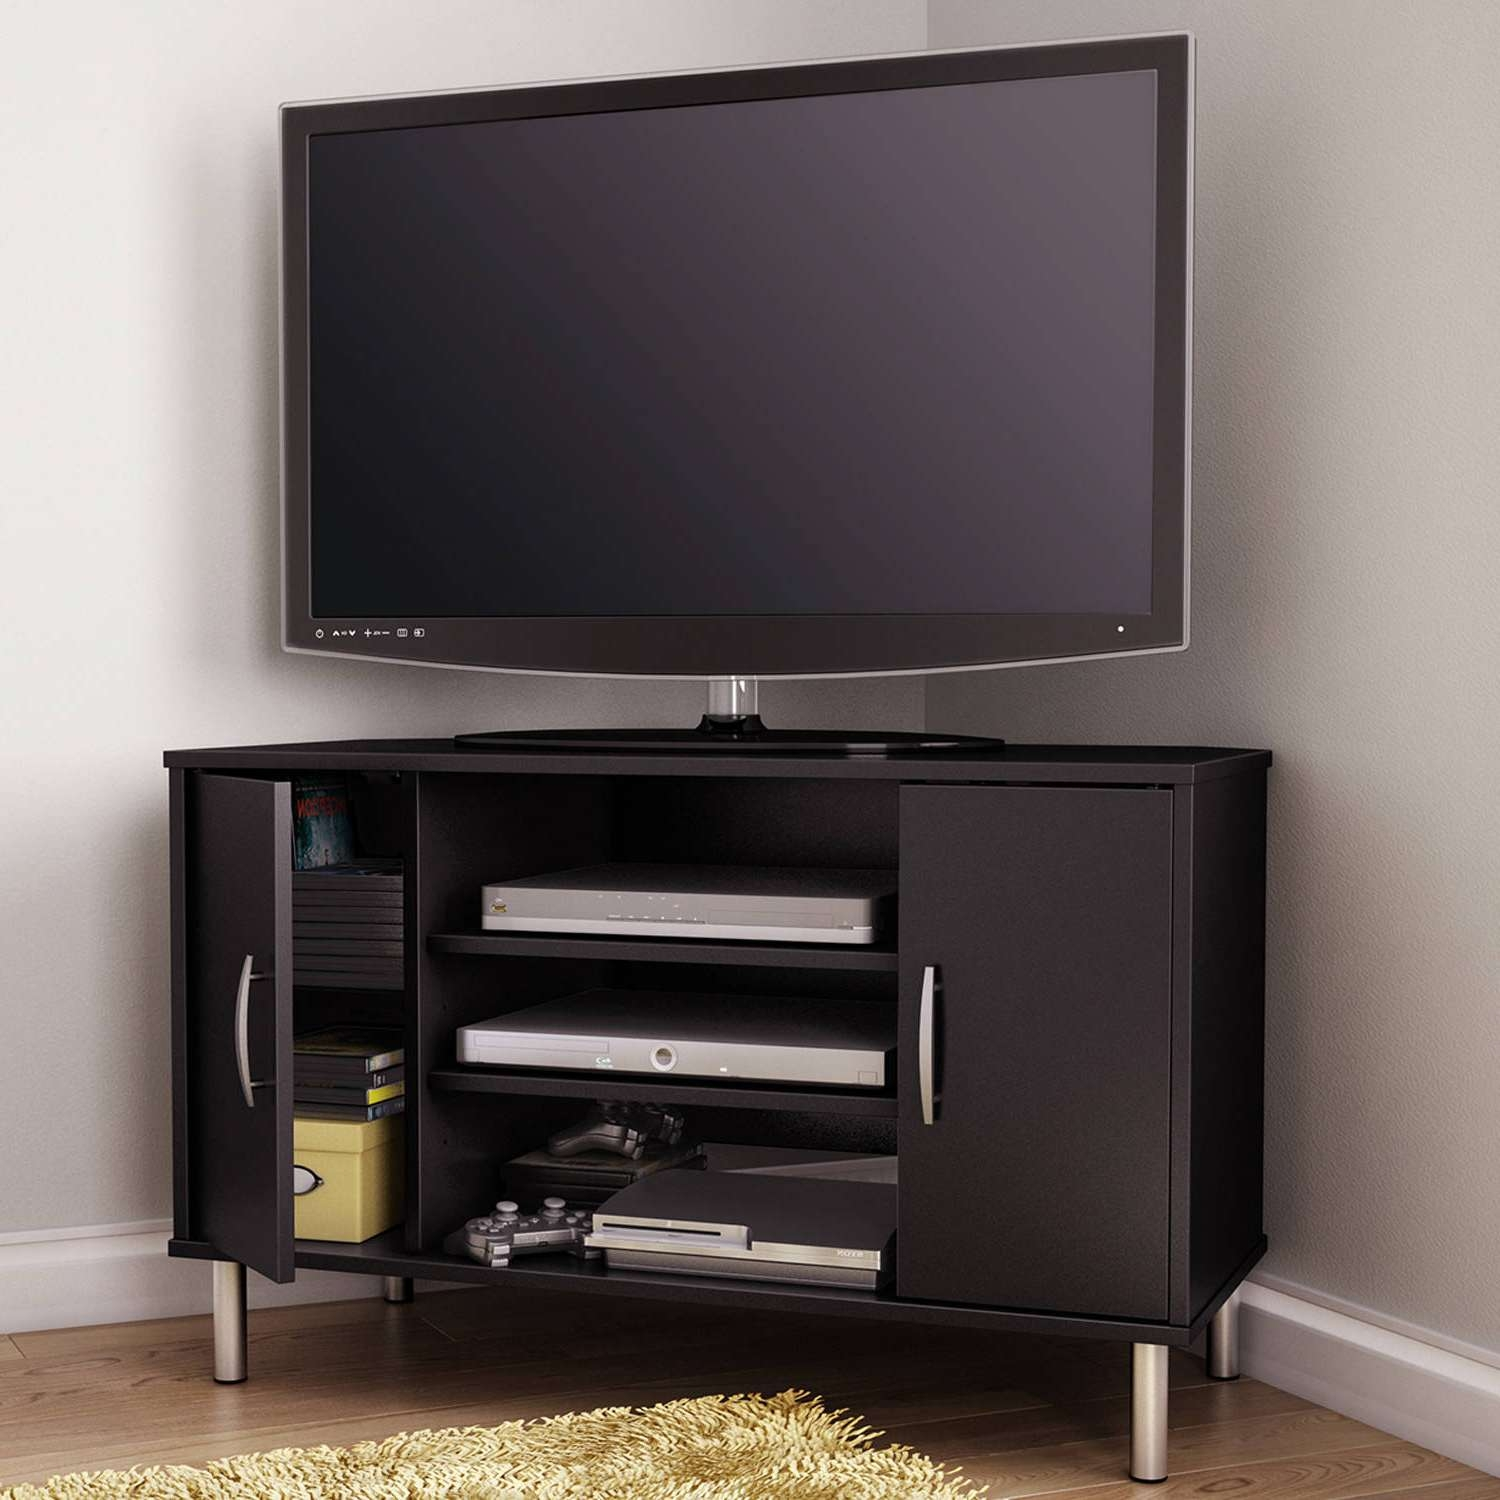 Tv : Tv Stands For Tube Tvs Intrigue Tv Stands For Tube Tvs 36 Intended For Tv Stands For Tube Tvs (View 10 of 15)